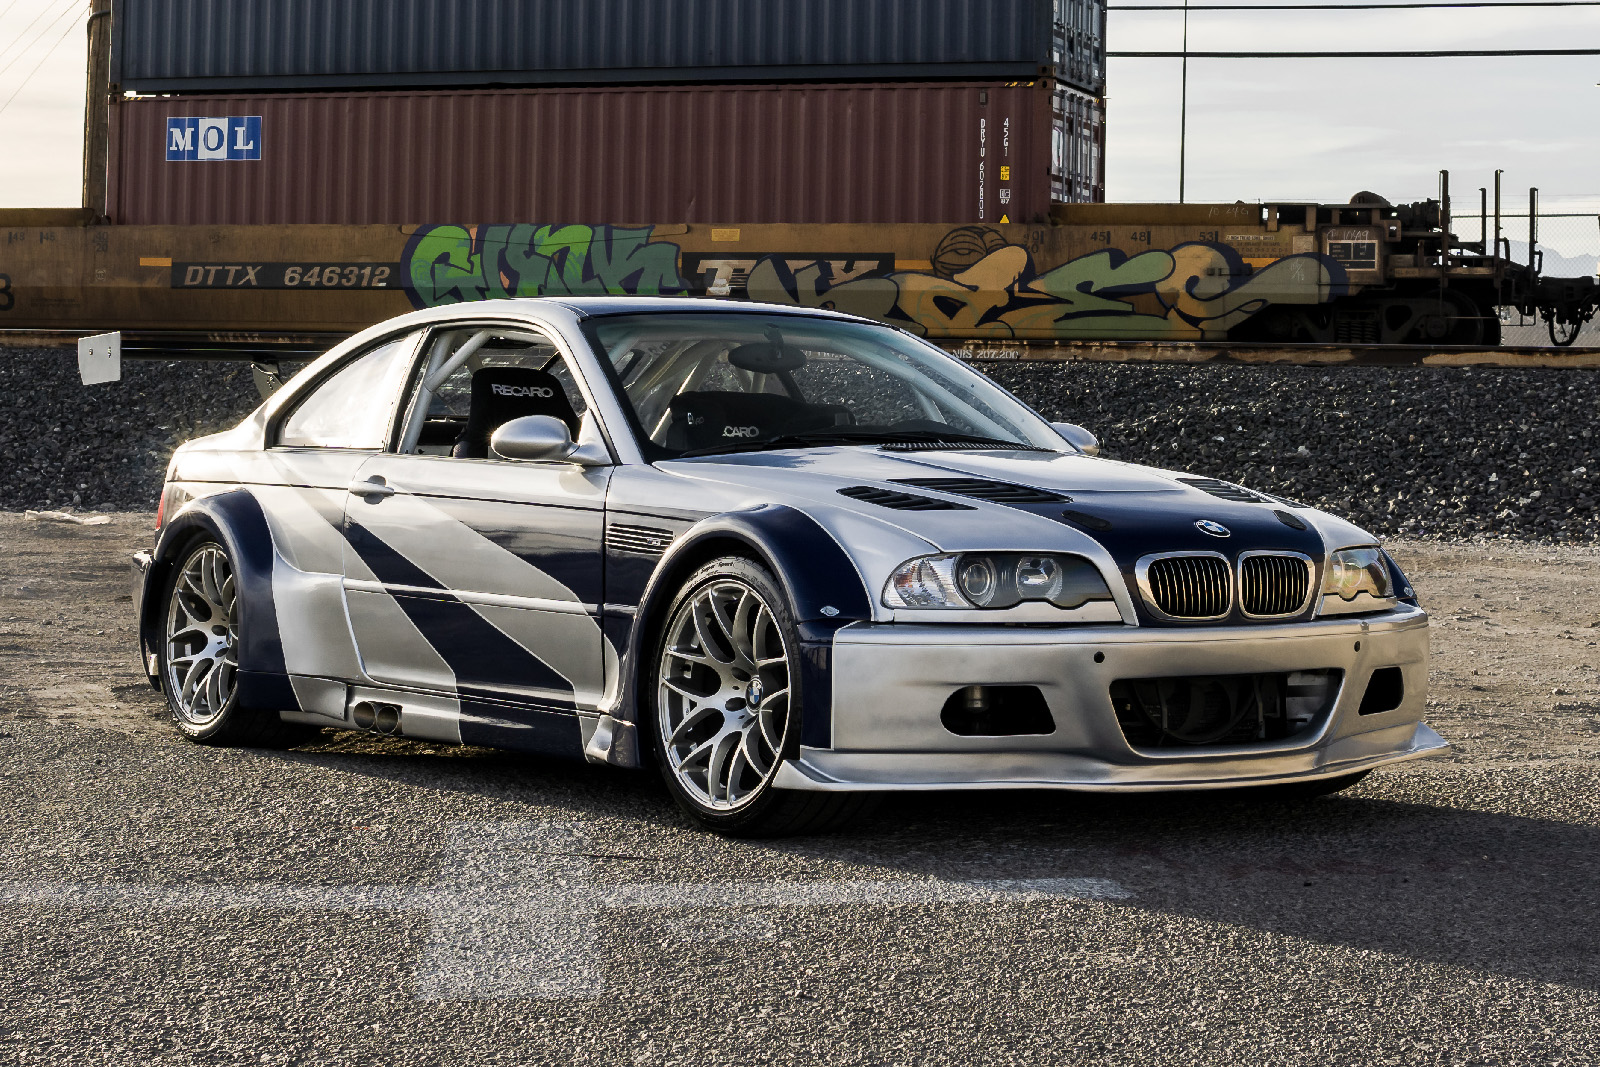 Most Wanted Andre Klebleyev S 2001 Bmw M3 Pasmag Is The Tuner S Source For Modified Car Culture Since 1999